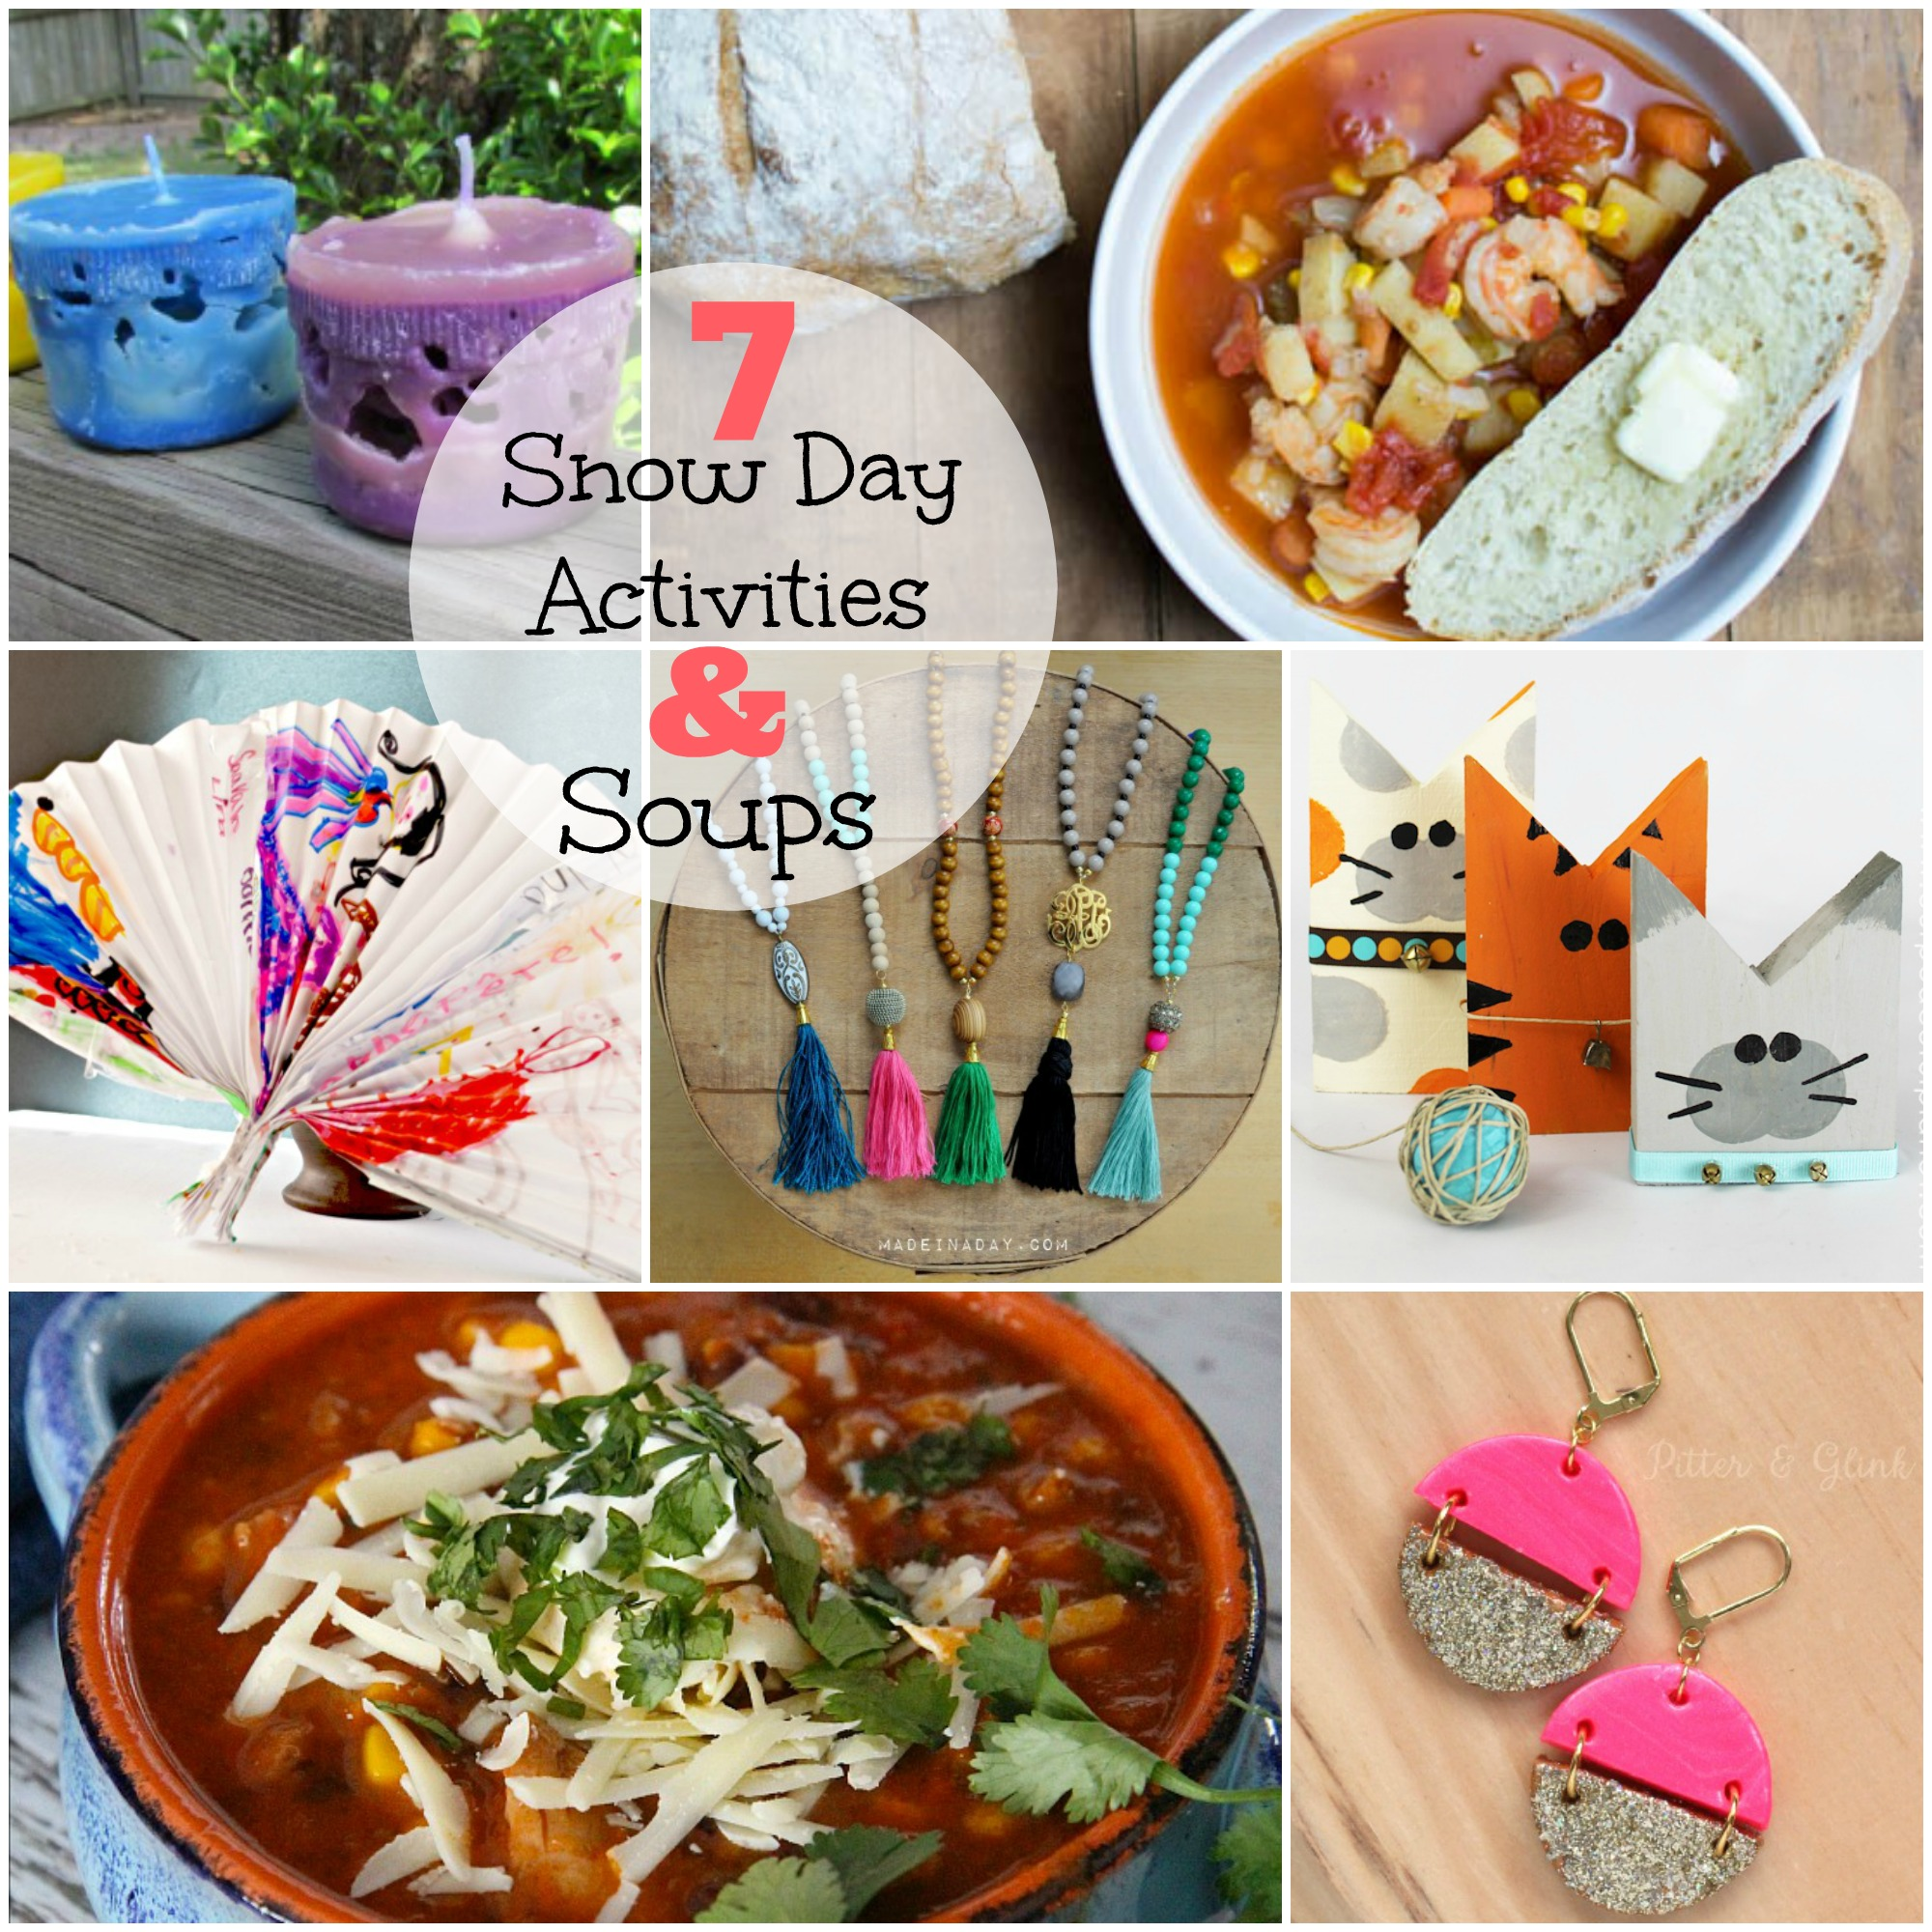 Snow Day Activities and Soups